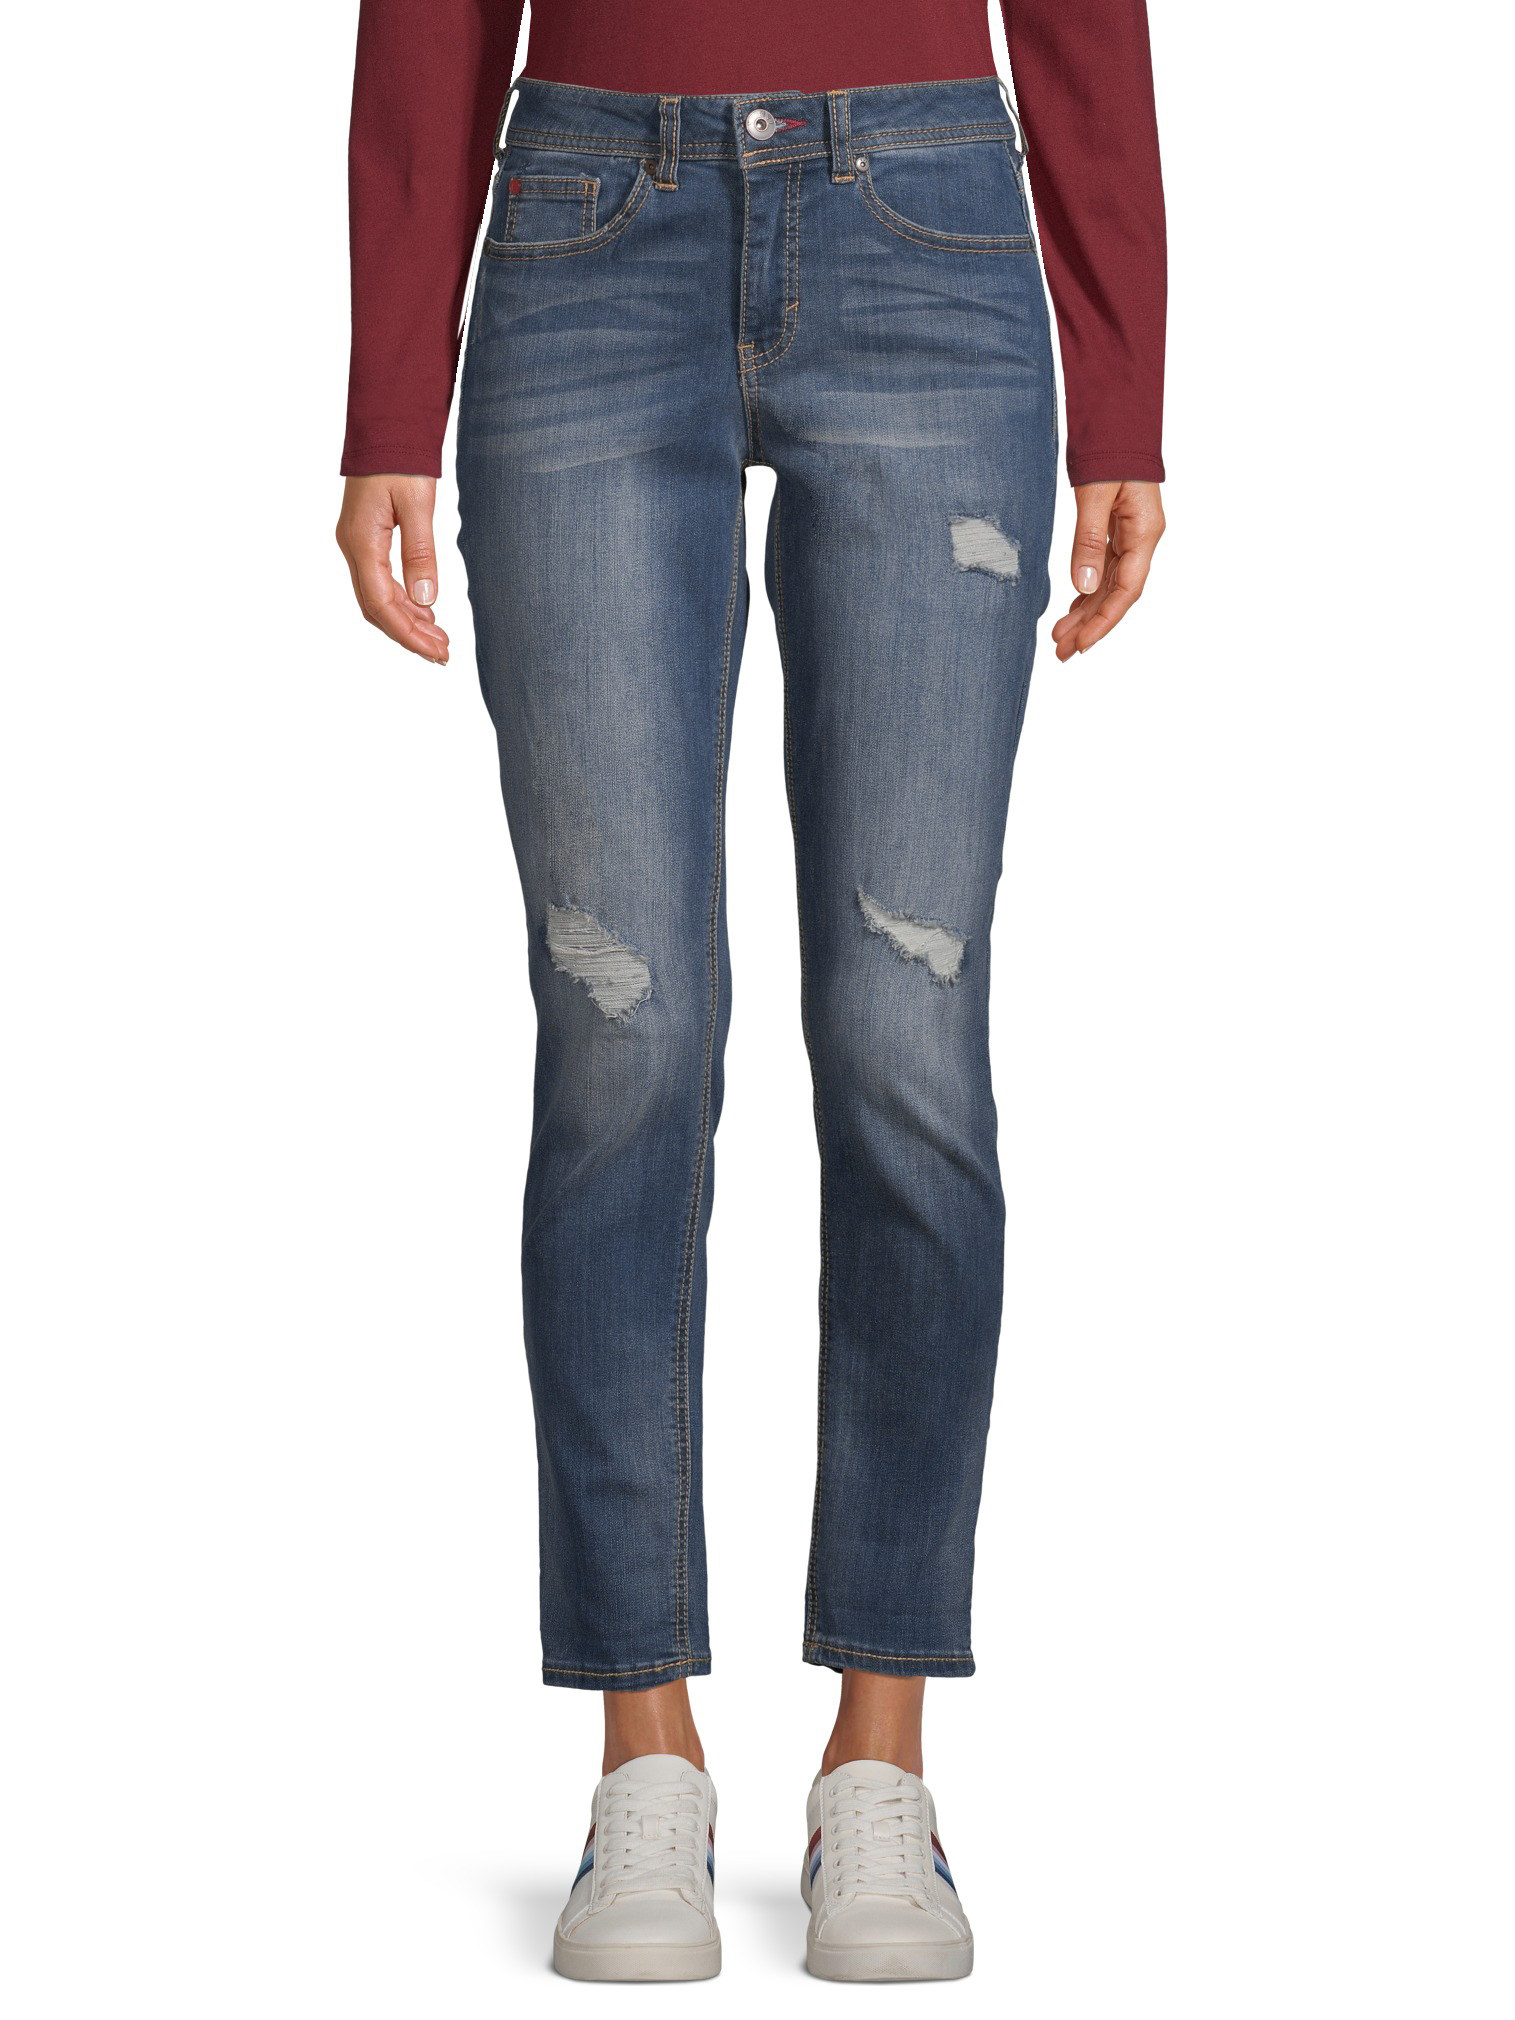 person wearing a relaxed fit jean in a dark wash